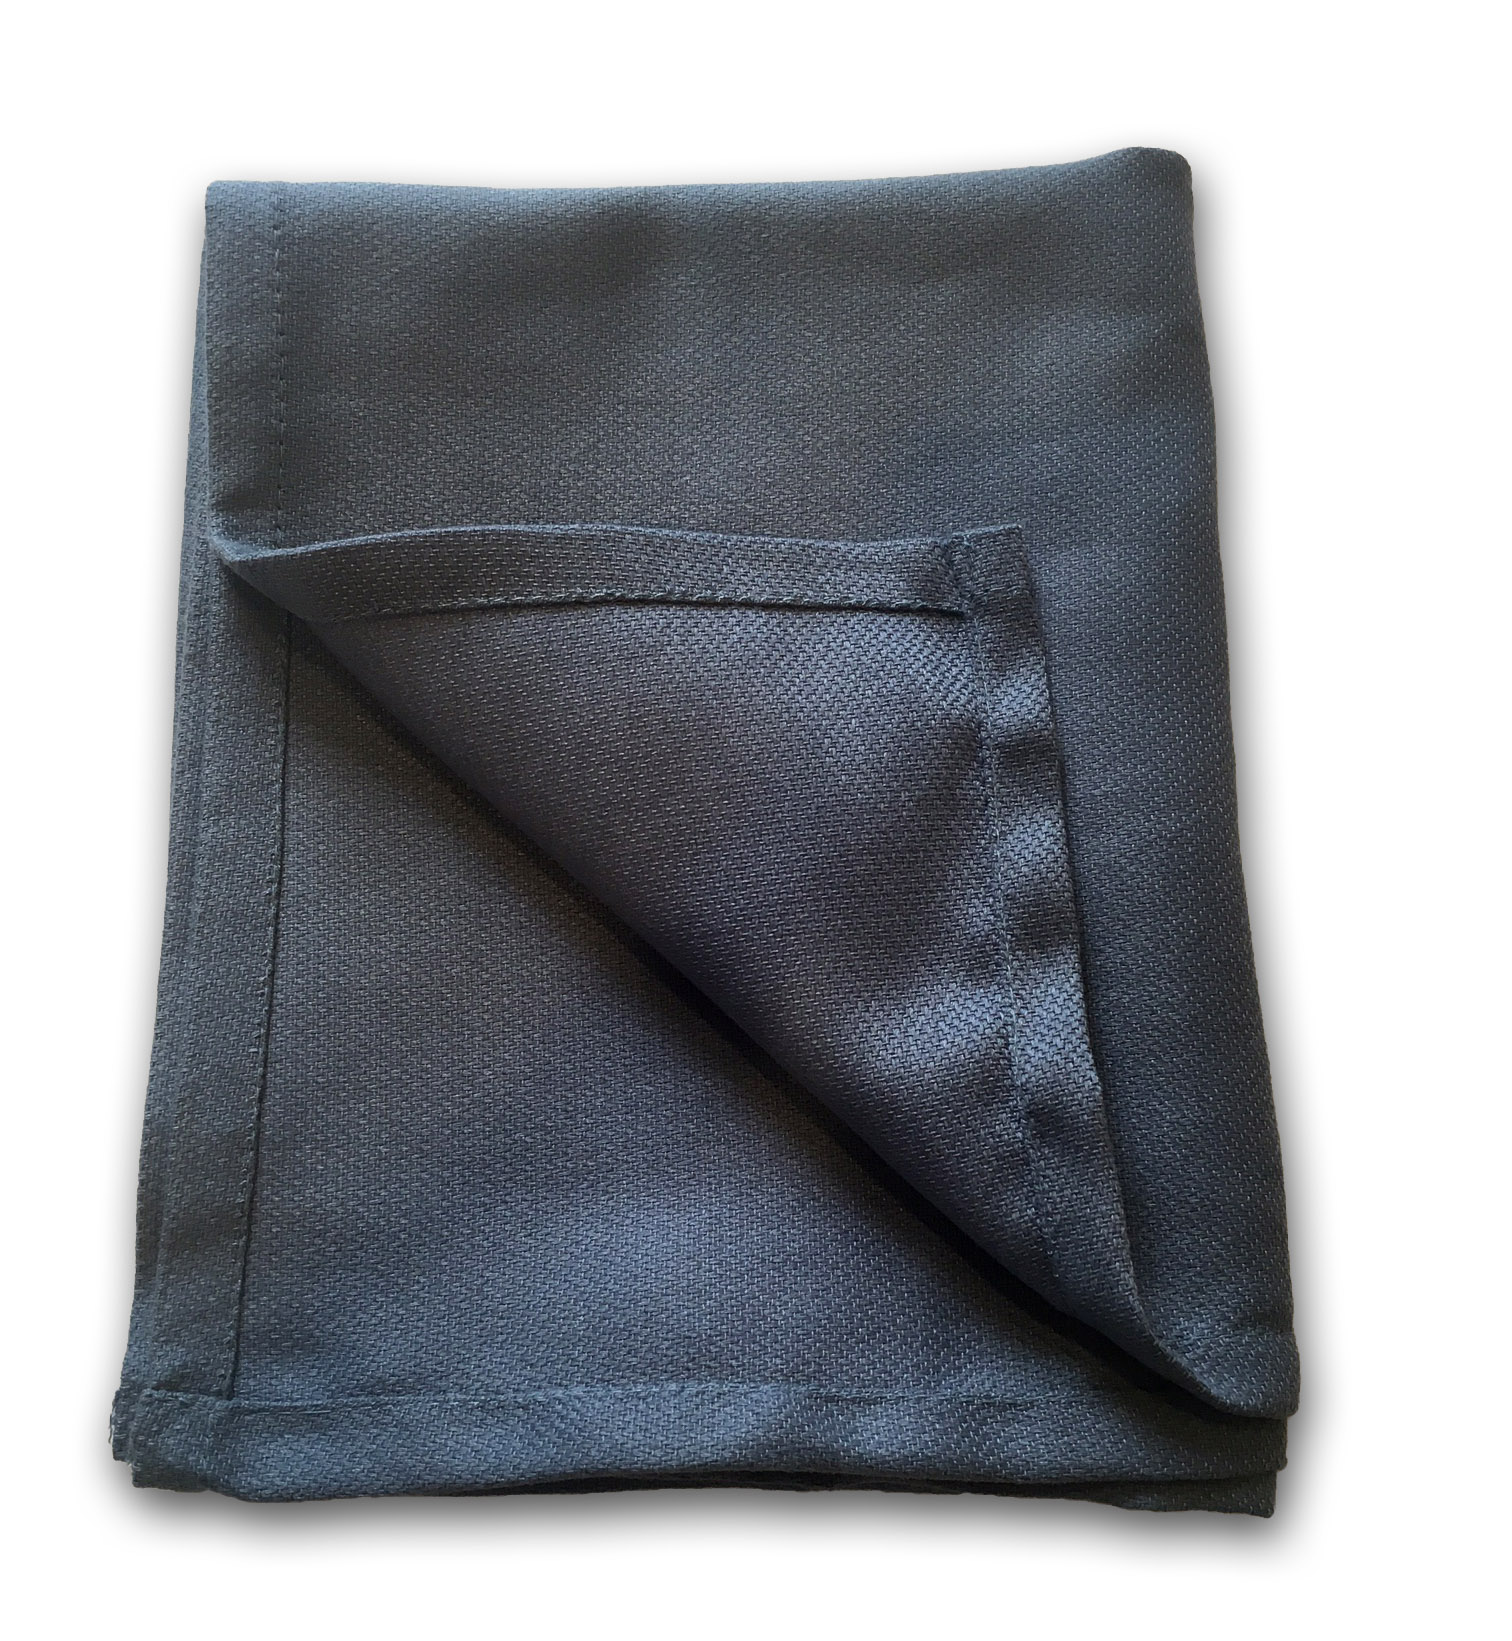 17x28 Surgical (OR) Towels, 100% Polyester, 270GSM